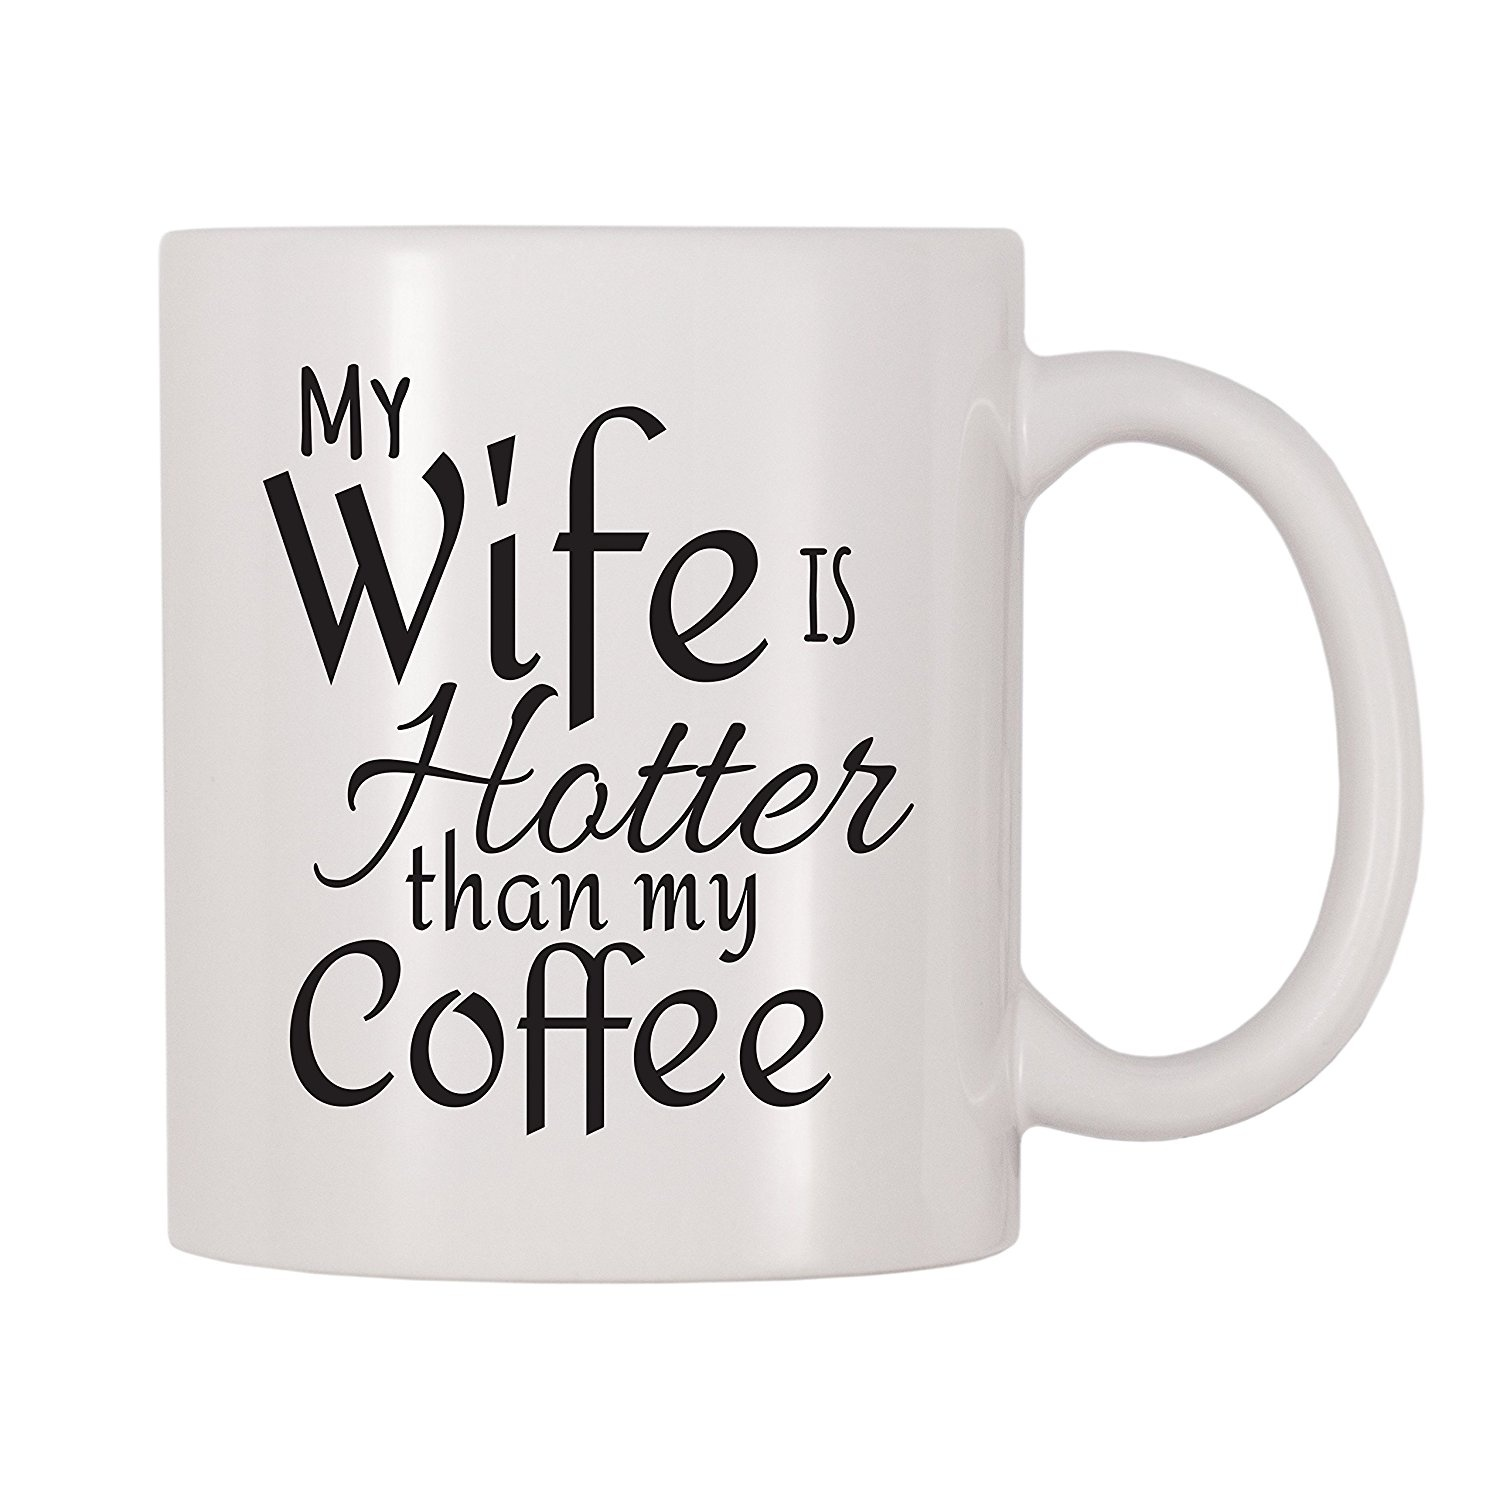 4 All Times My Wife Is Hotter Than My Coffee Coffee Mug 330ml By